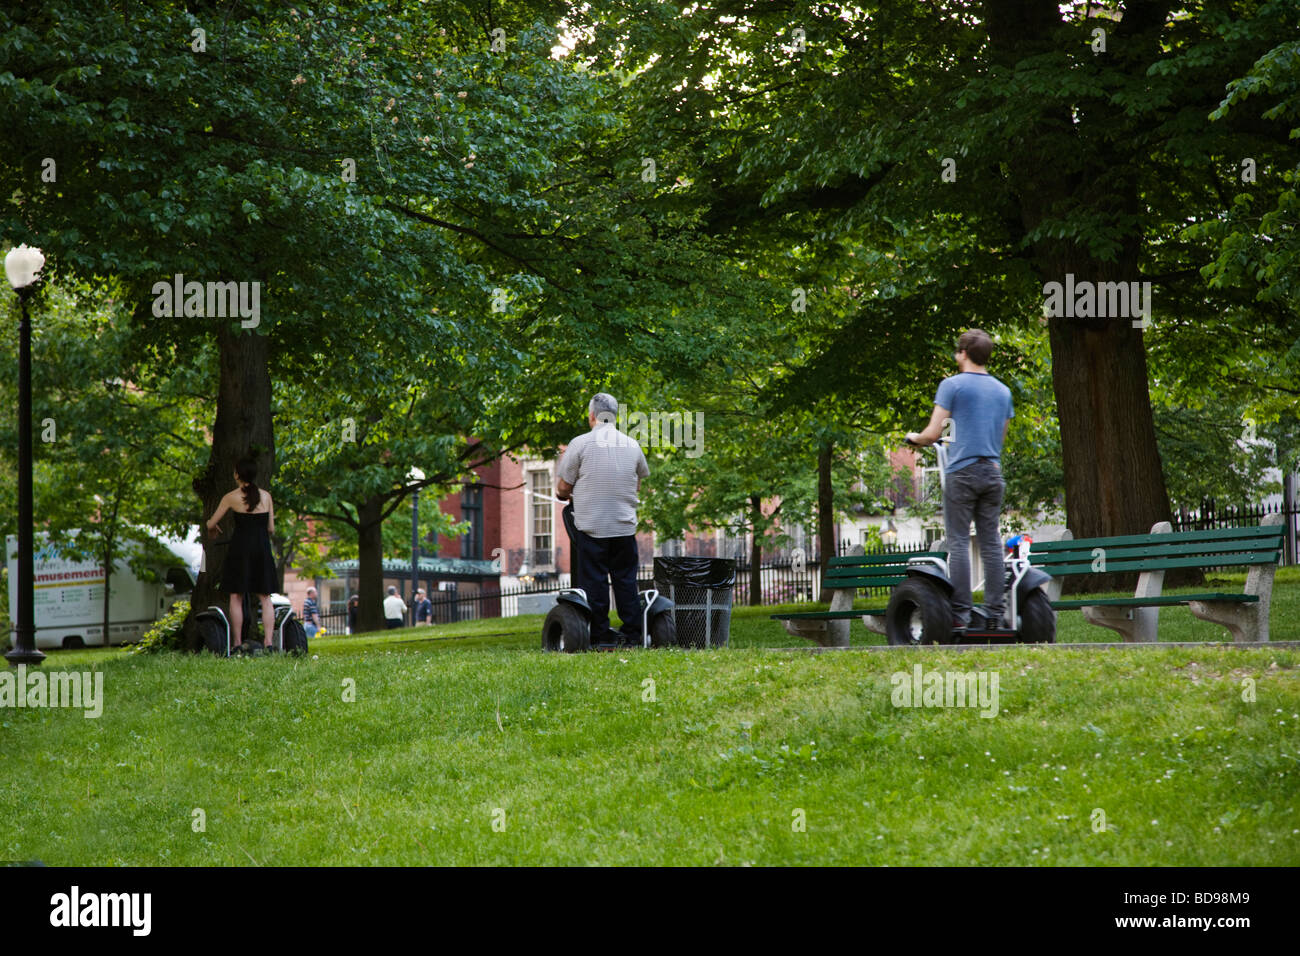 Two wheel ELECTRIC SCOOTERS on a pathway in the BOSTON COMMON BOSTON MASSACHUSETTS - Stock Image